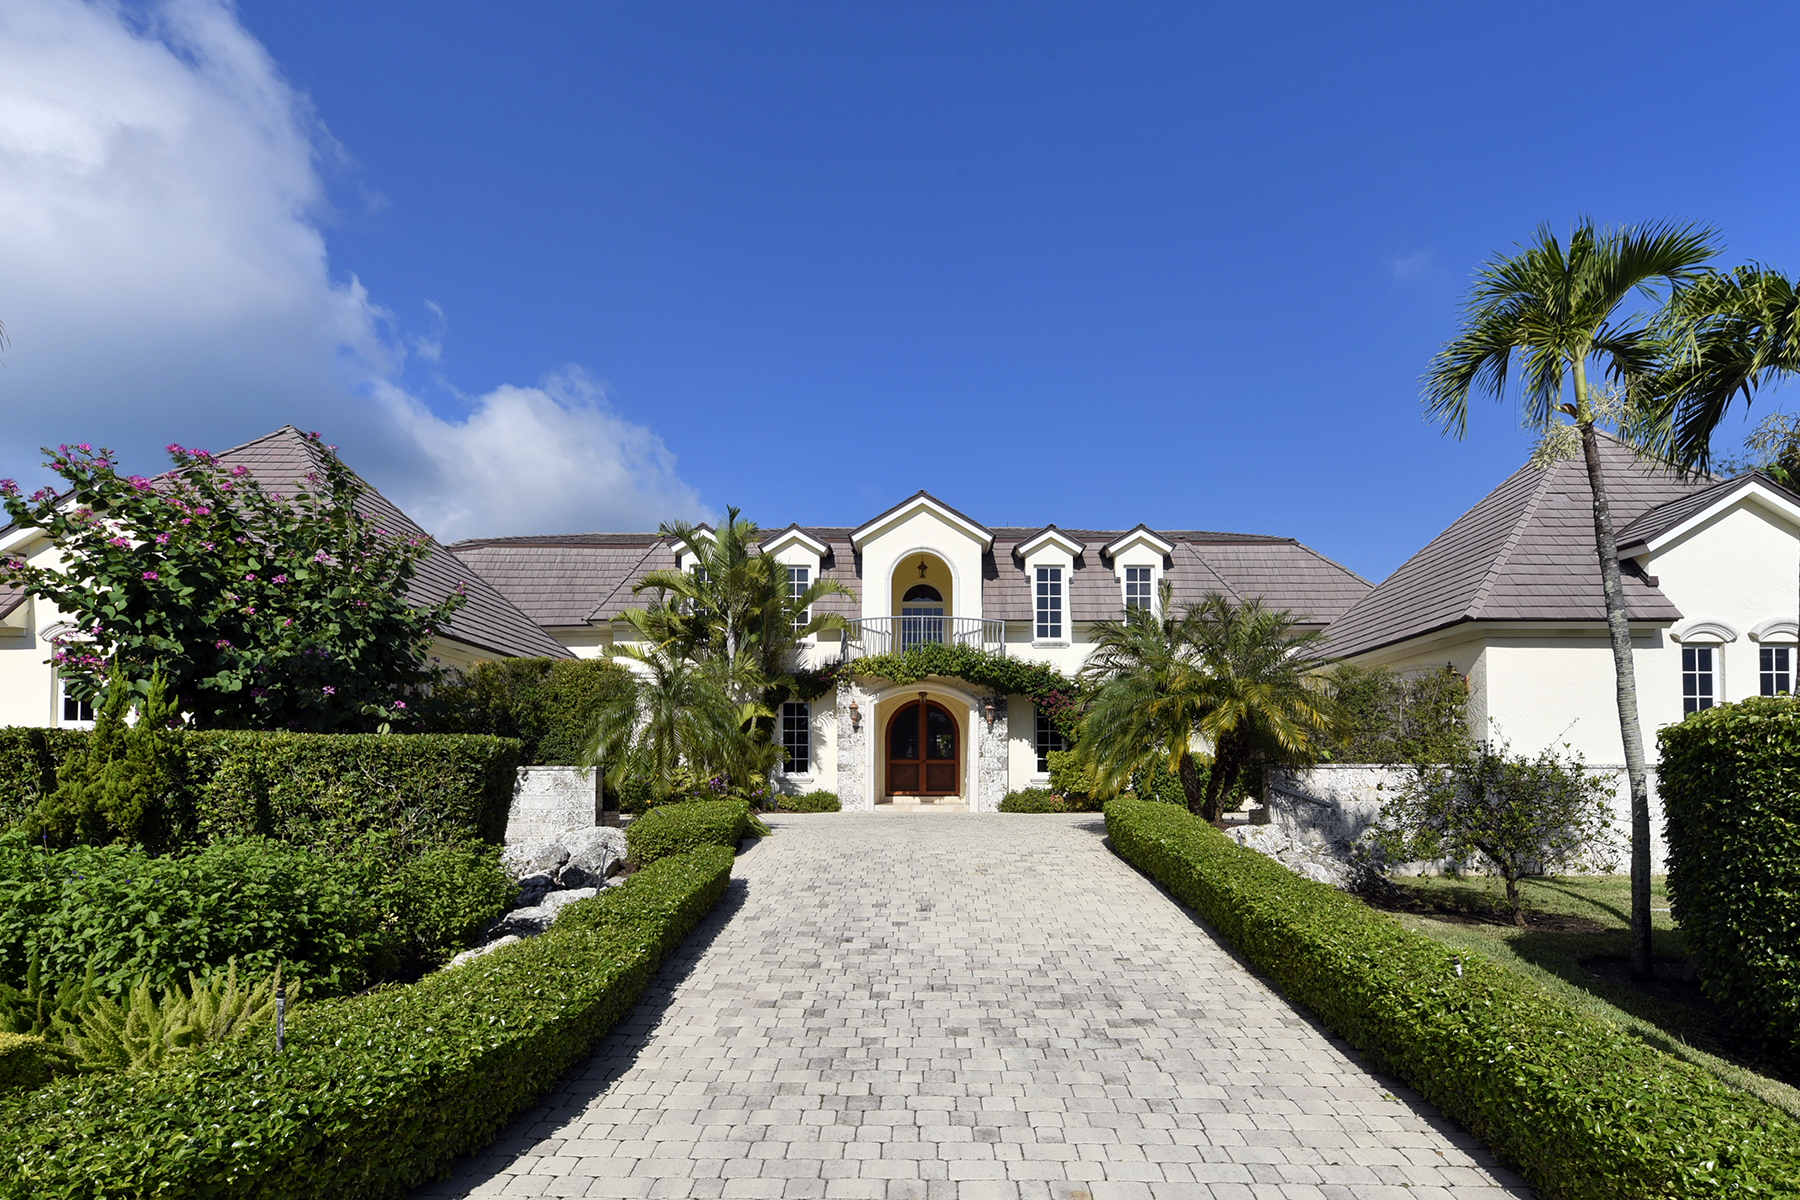 Moradia para Venda às Expansive Waterfront Home at Ocean Reef 25 Bay Ridge Road Ocean Reef Community, Key Largo, Florida, 33037 Estados Unidos